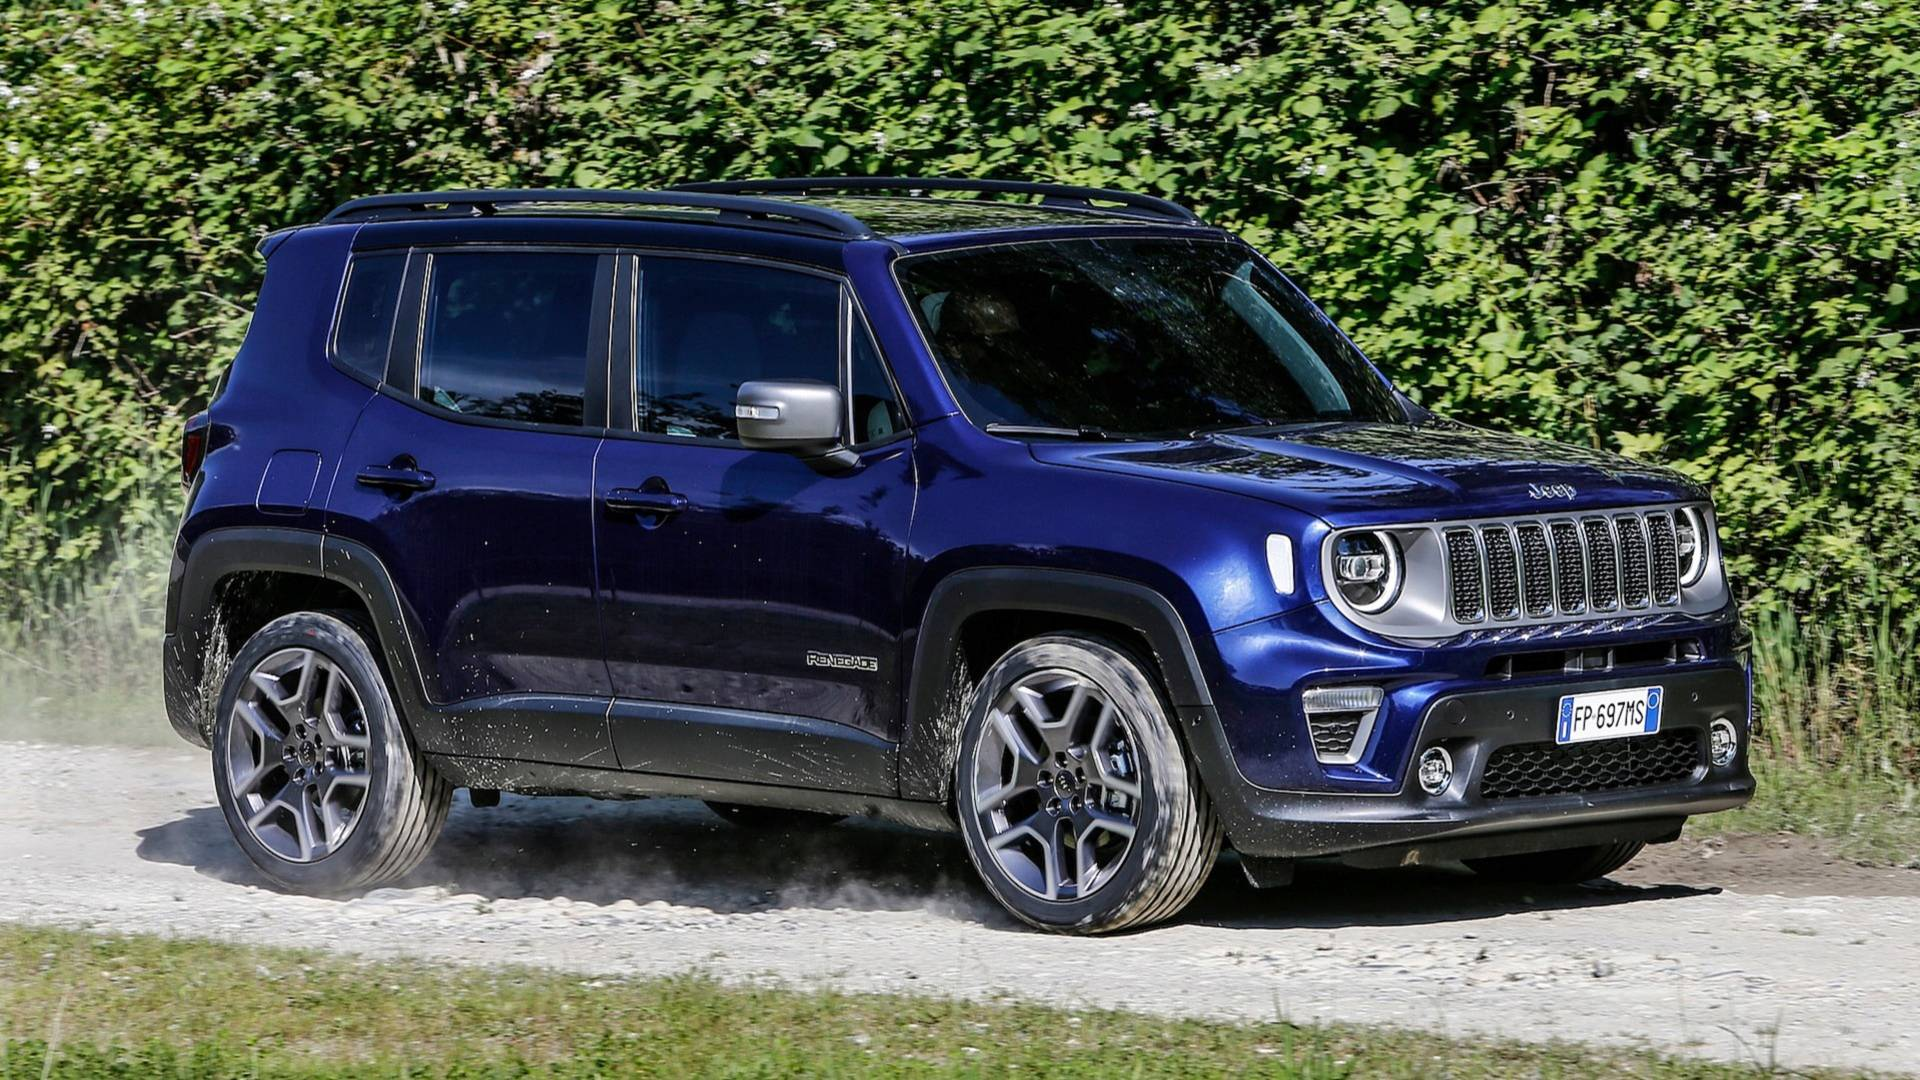 Jeep 4x4 Limited >> Jeep Renegade Crash Tested by the Euro NCAP, Awarded the Coveted 5-Star Rating - autoevolution